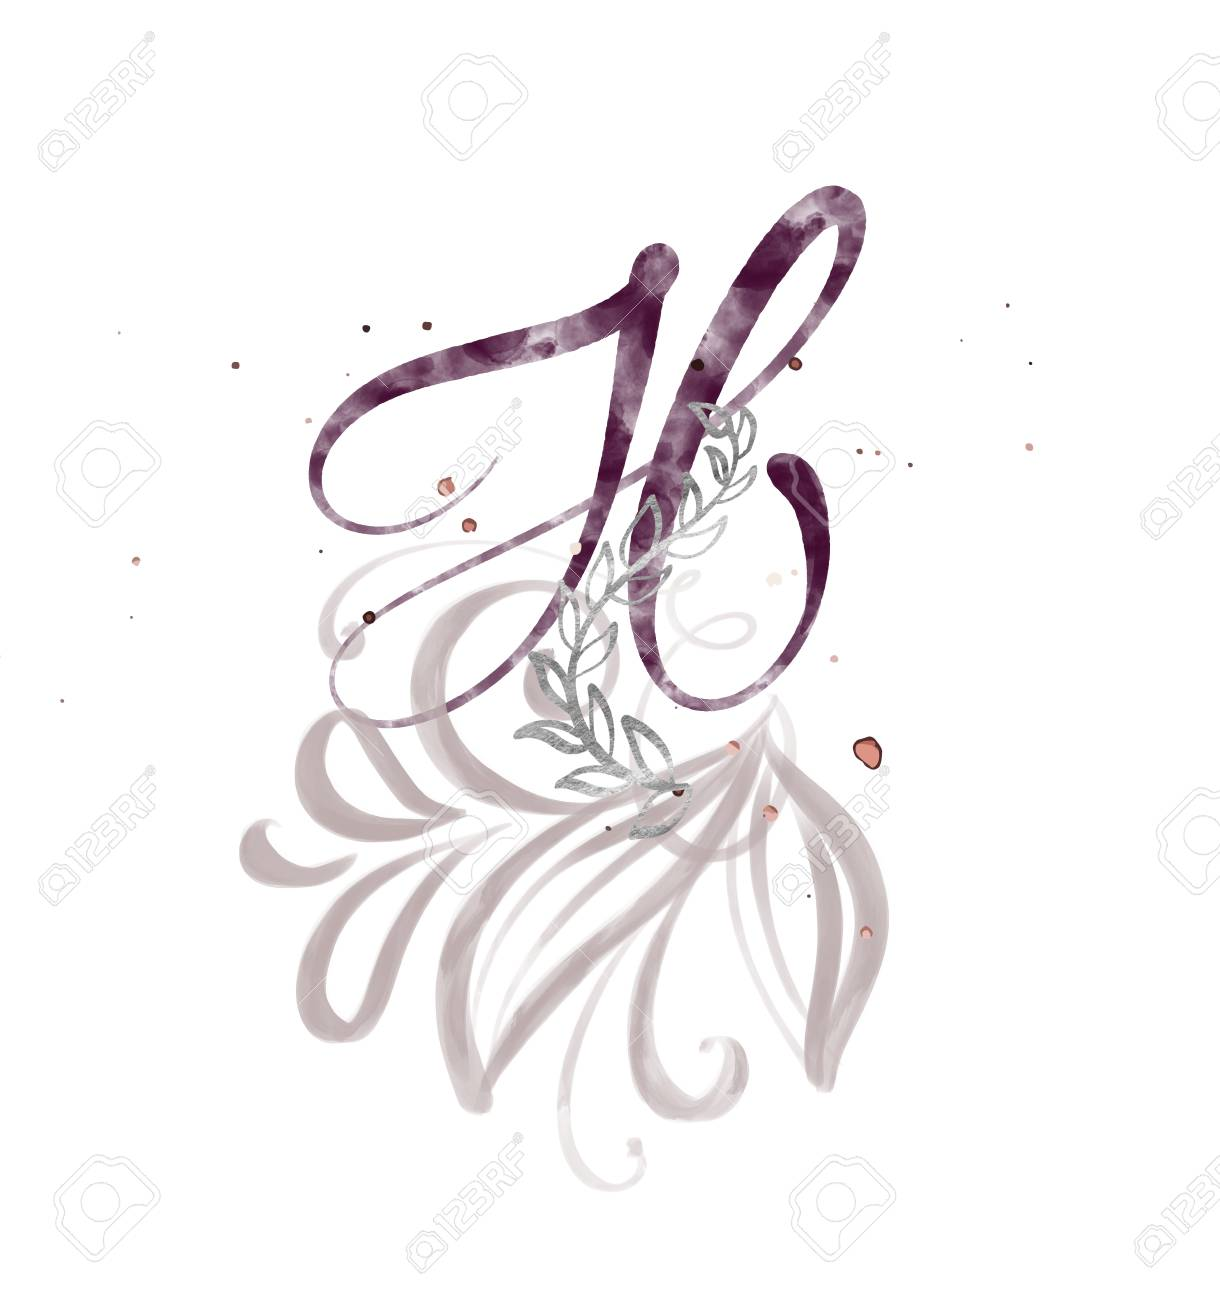 Hand Drawn Calligraphy Letter H Watercolor Script Font Isolated Letters Written With Ink